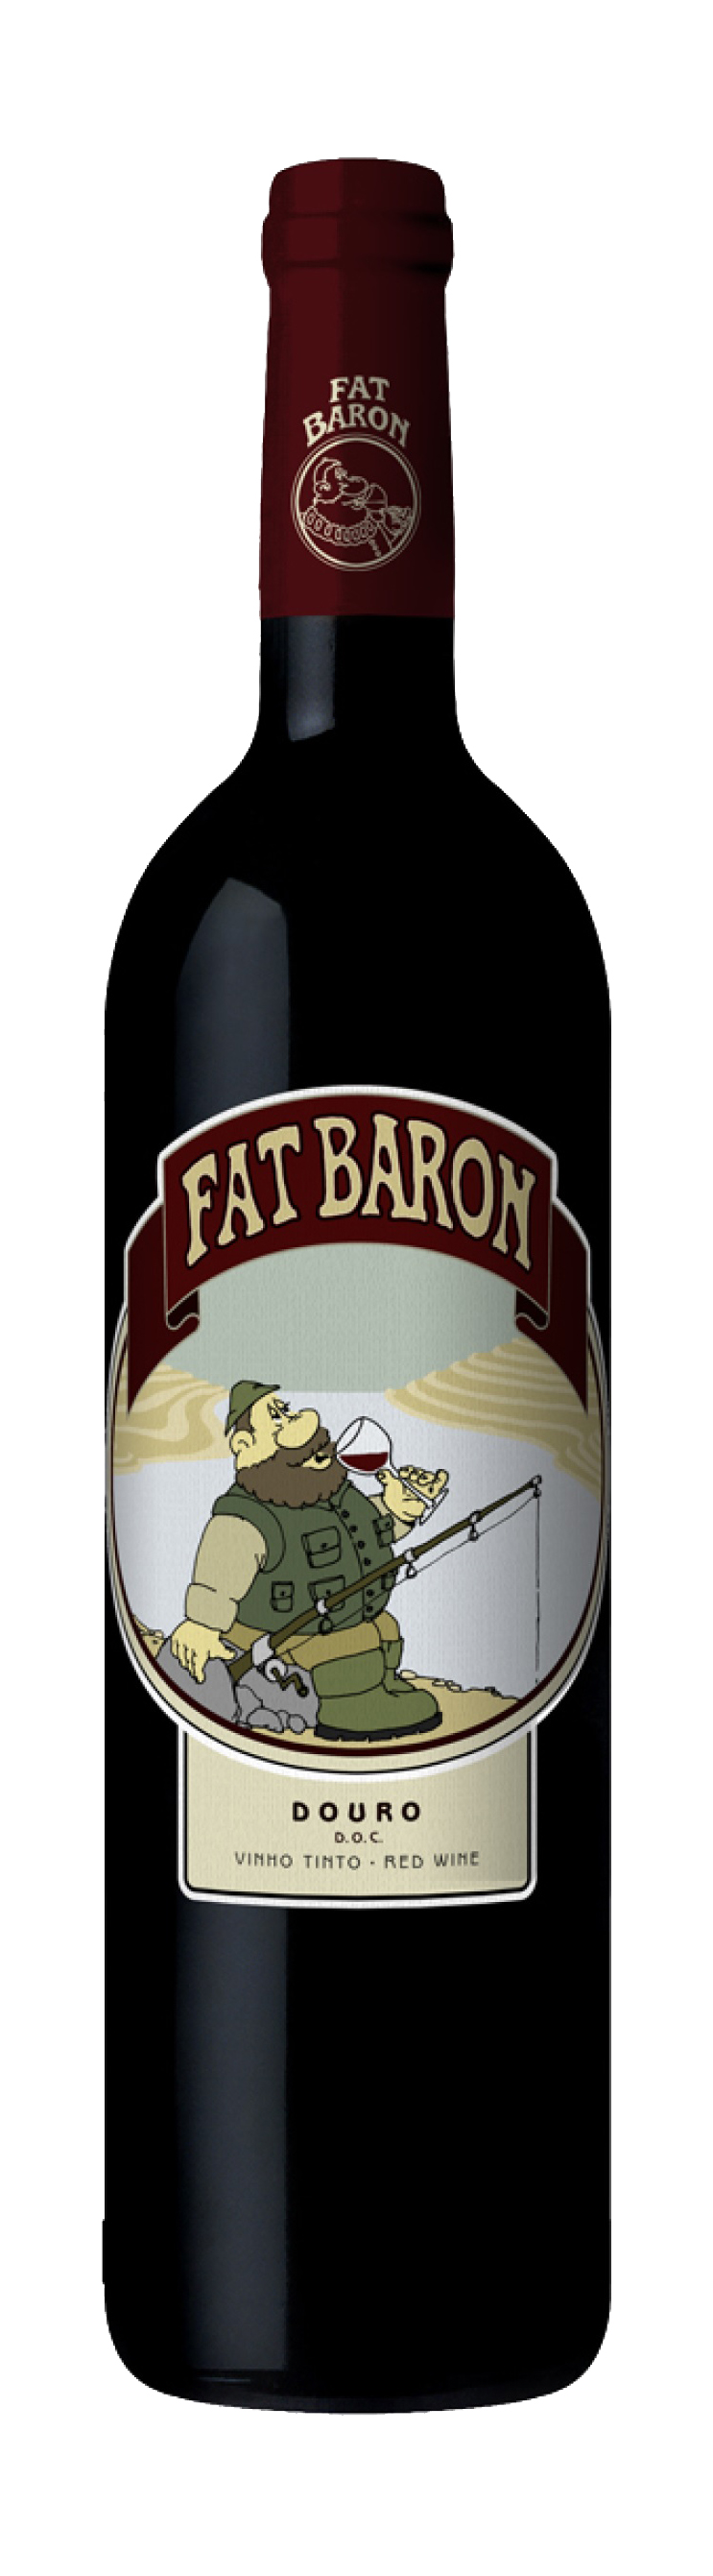 FAT BARON RED